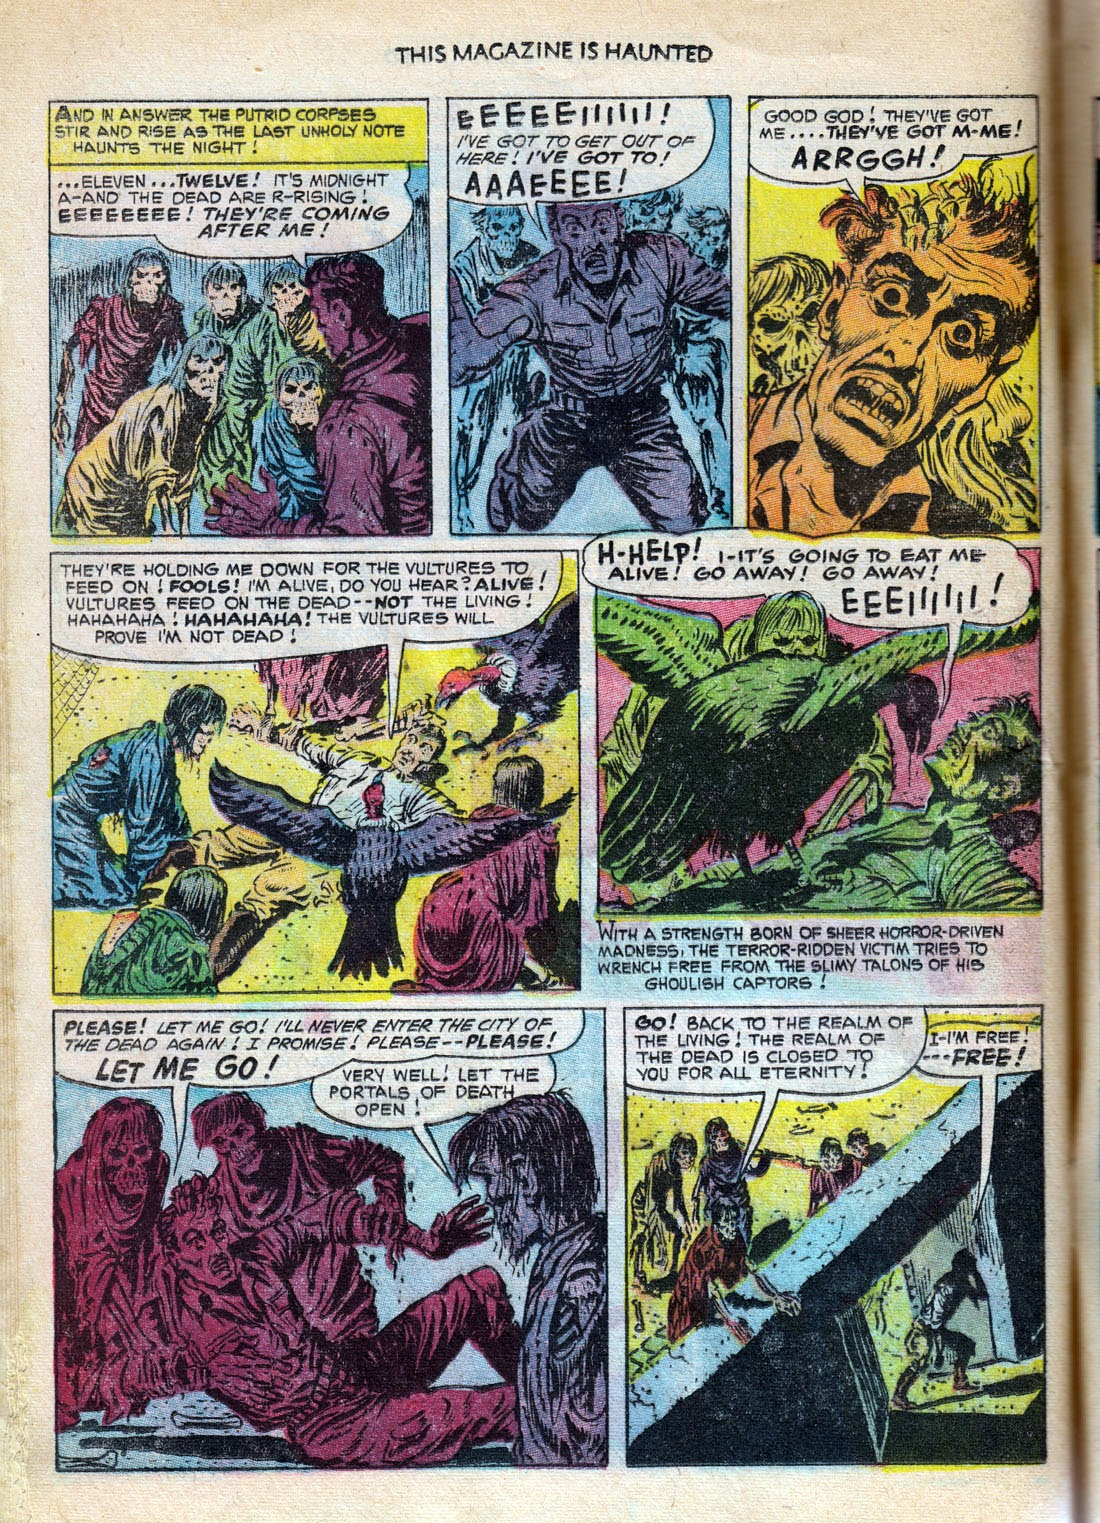 Read online This Magazine Is Haunted comic -  Issue #10 - 16